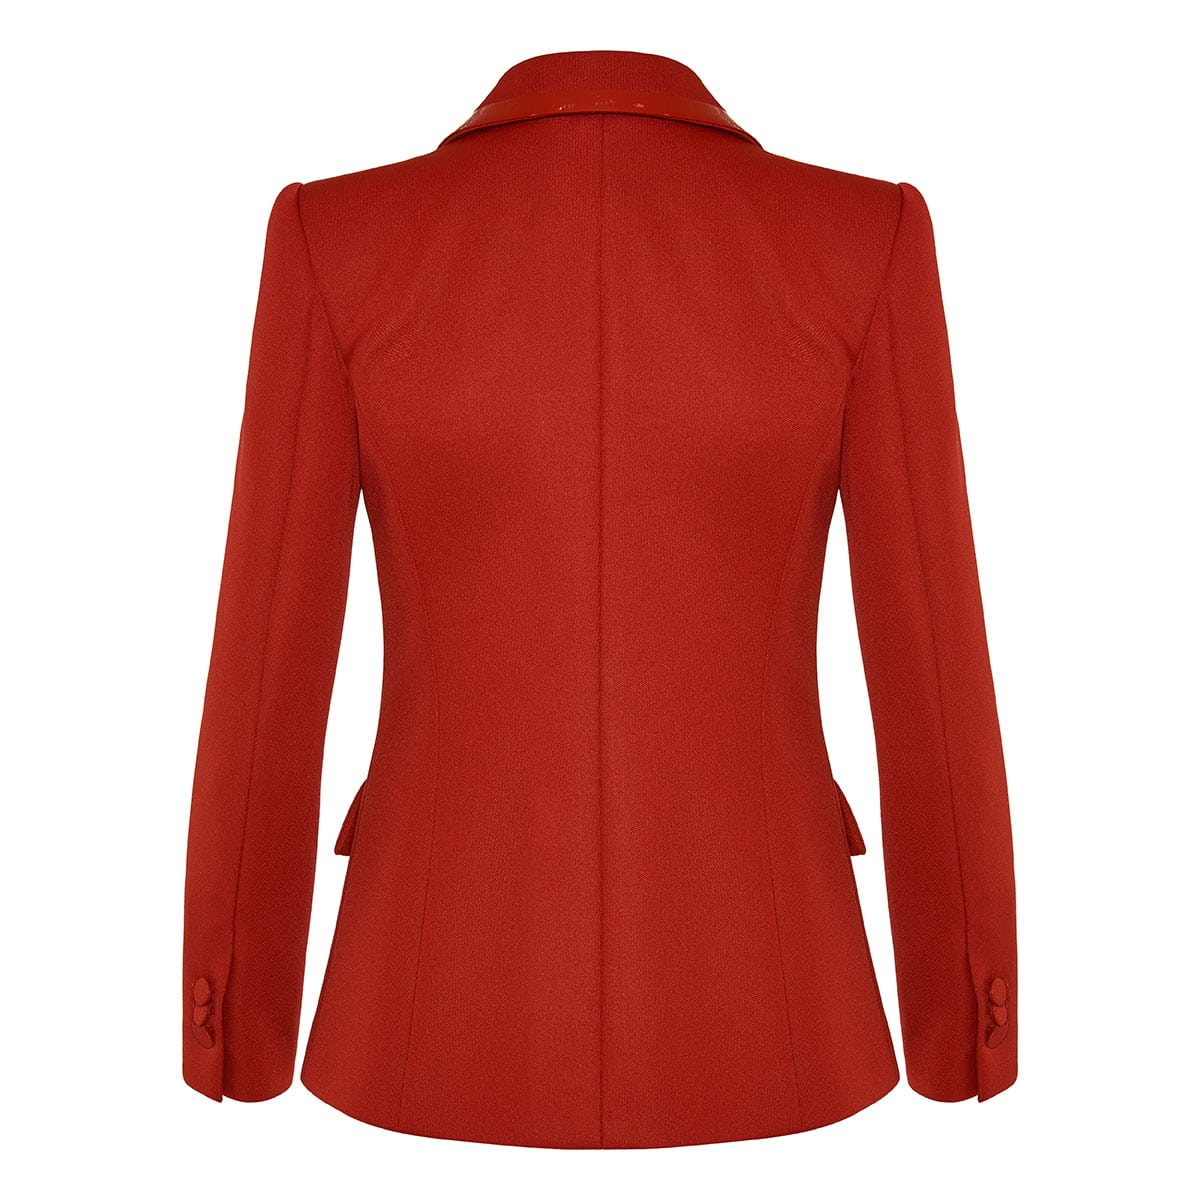 Patent-trimmed single-breasted blazer